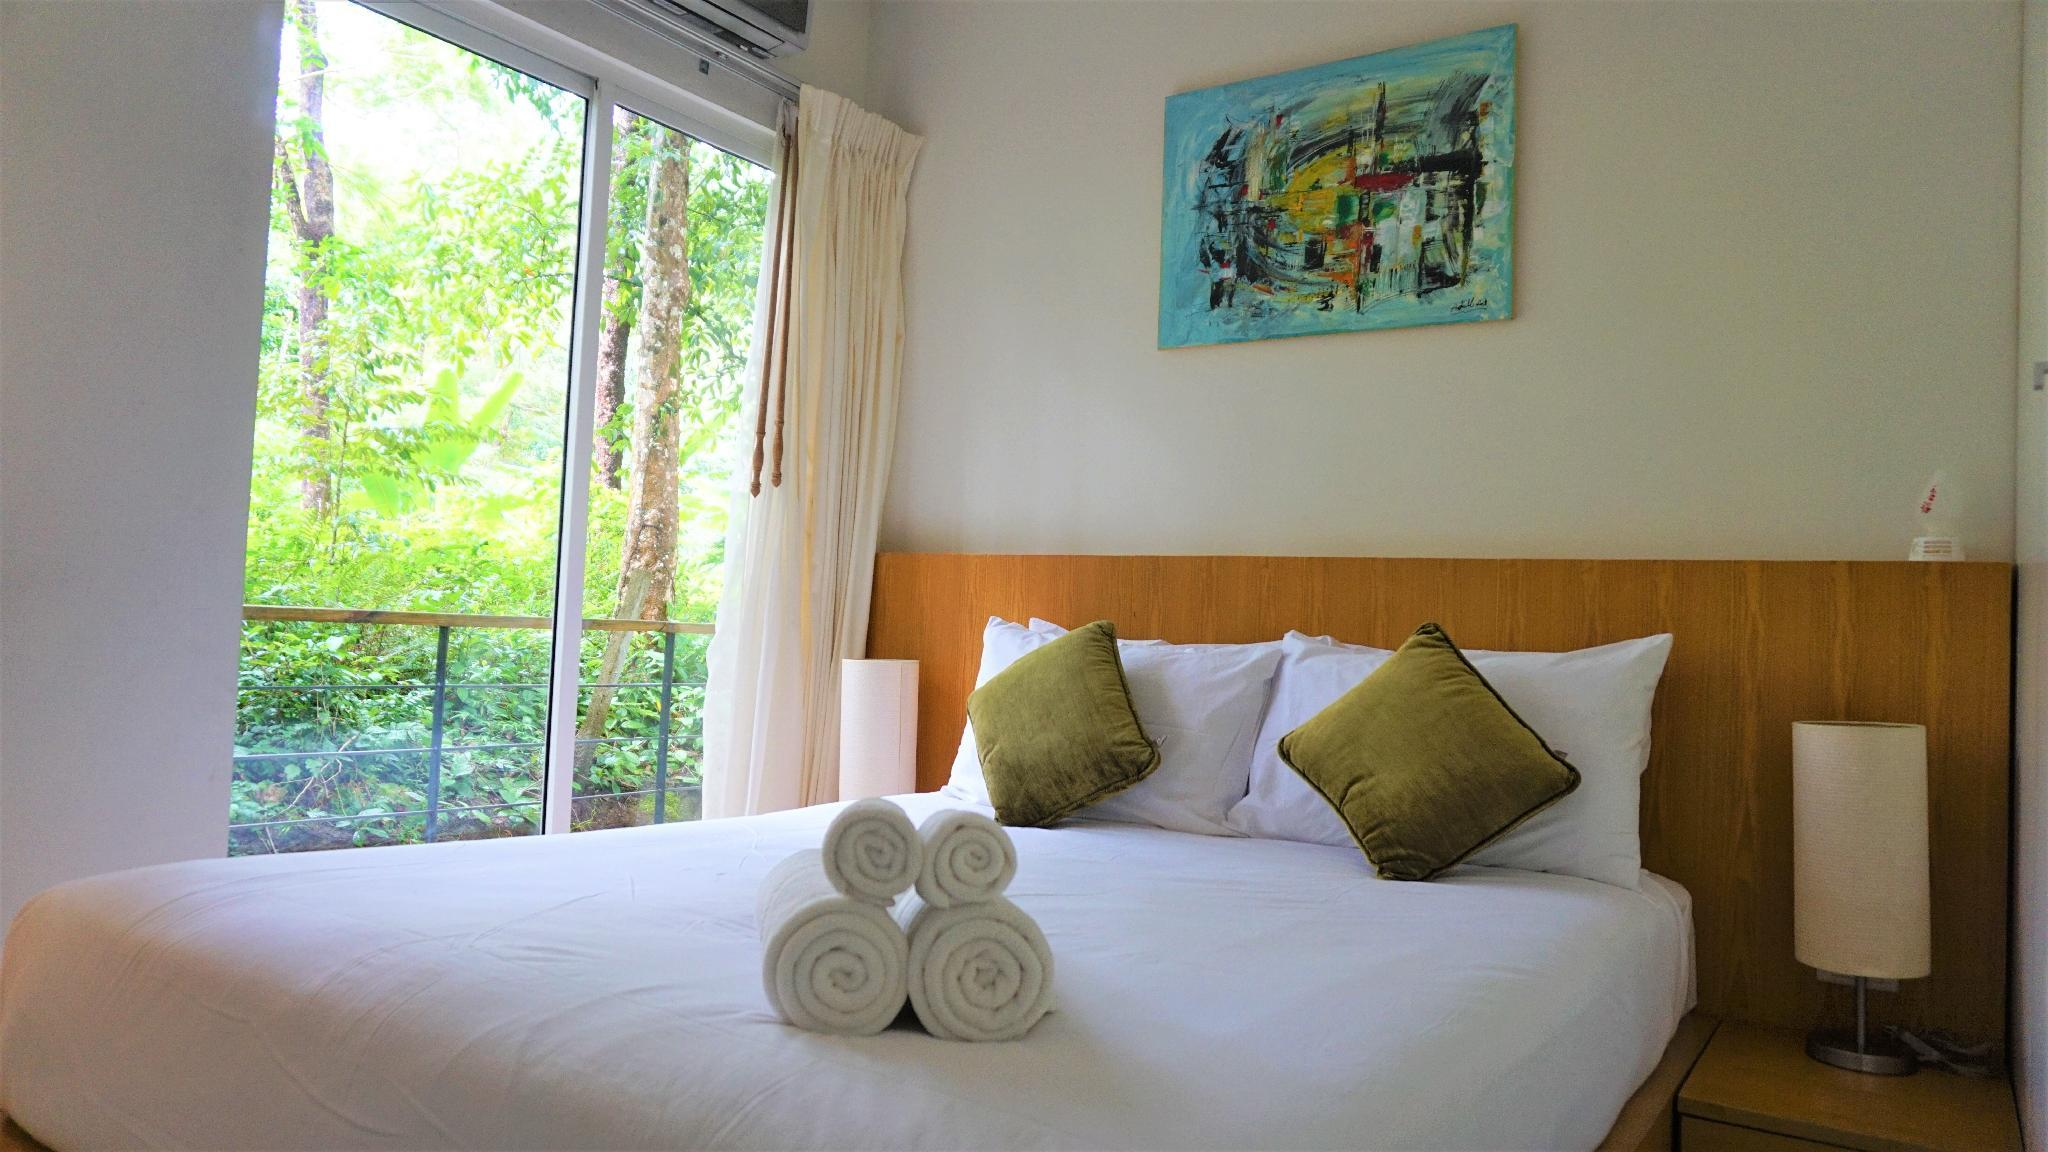 Hotels Reviews: 3 Bed Apartment The Trees By Rent Phuket Property – Room Rates, Photos & Deals